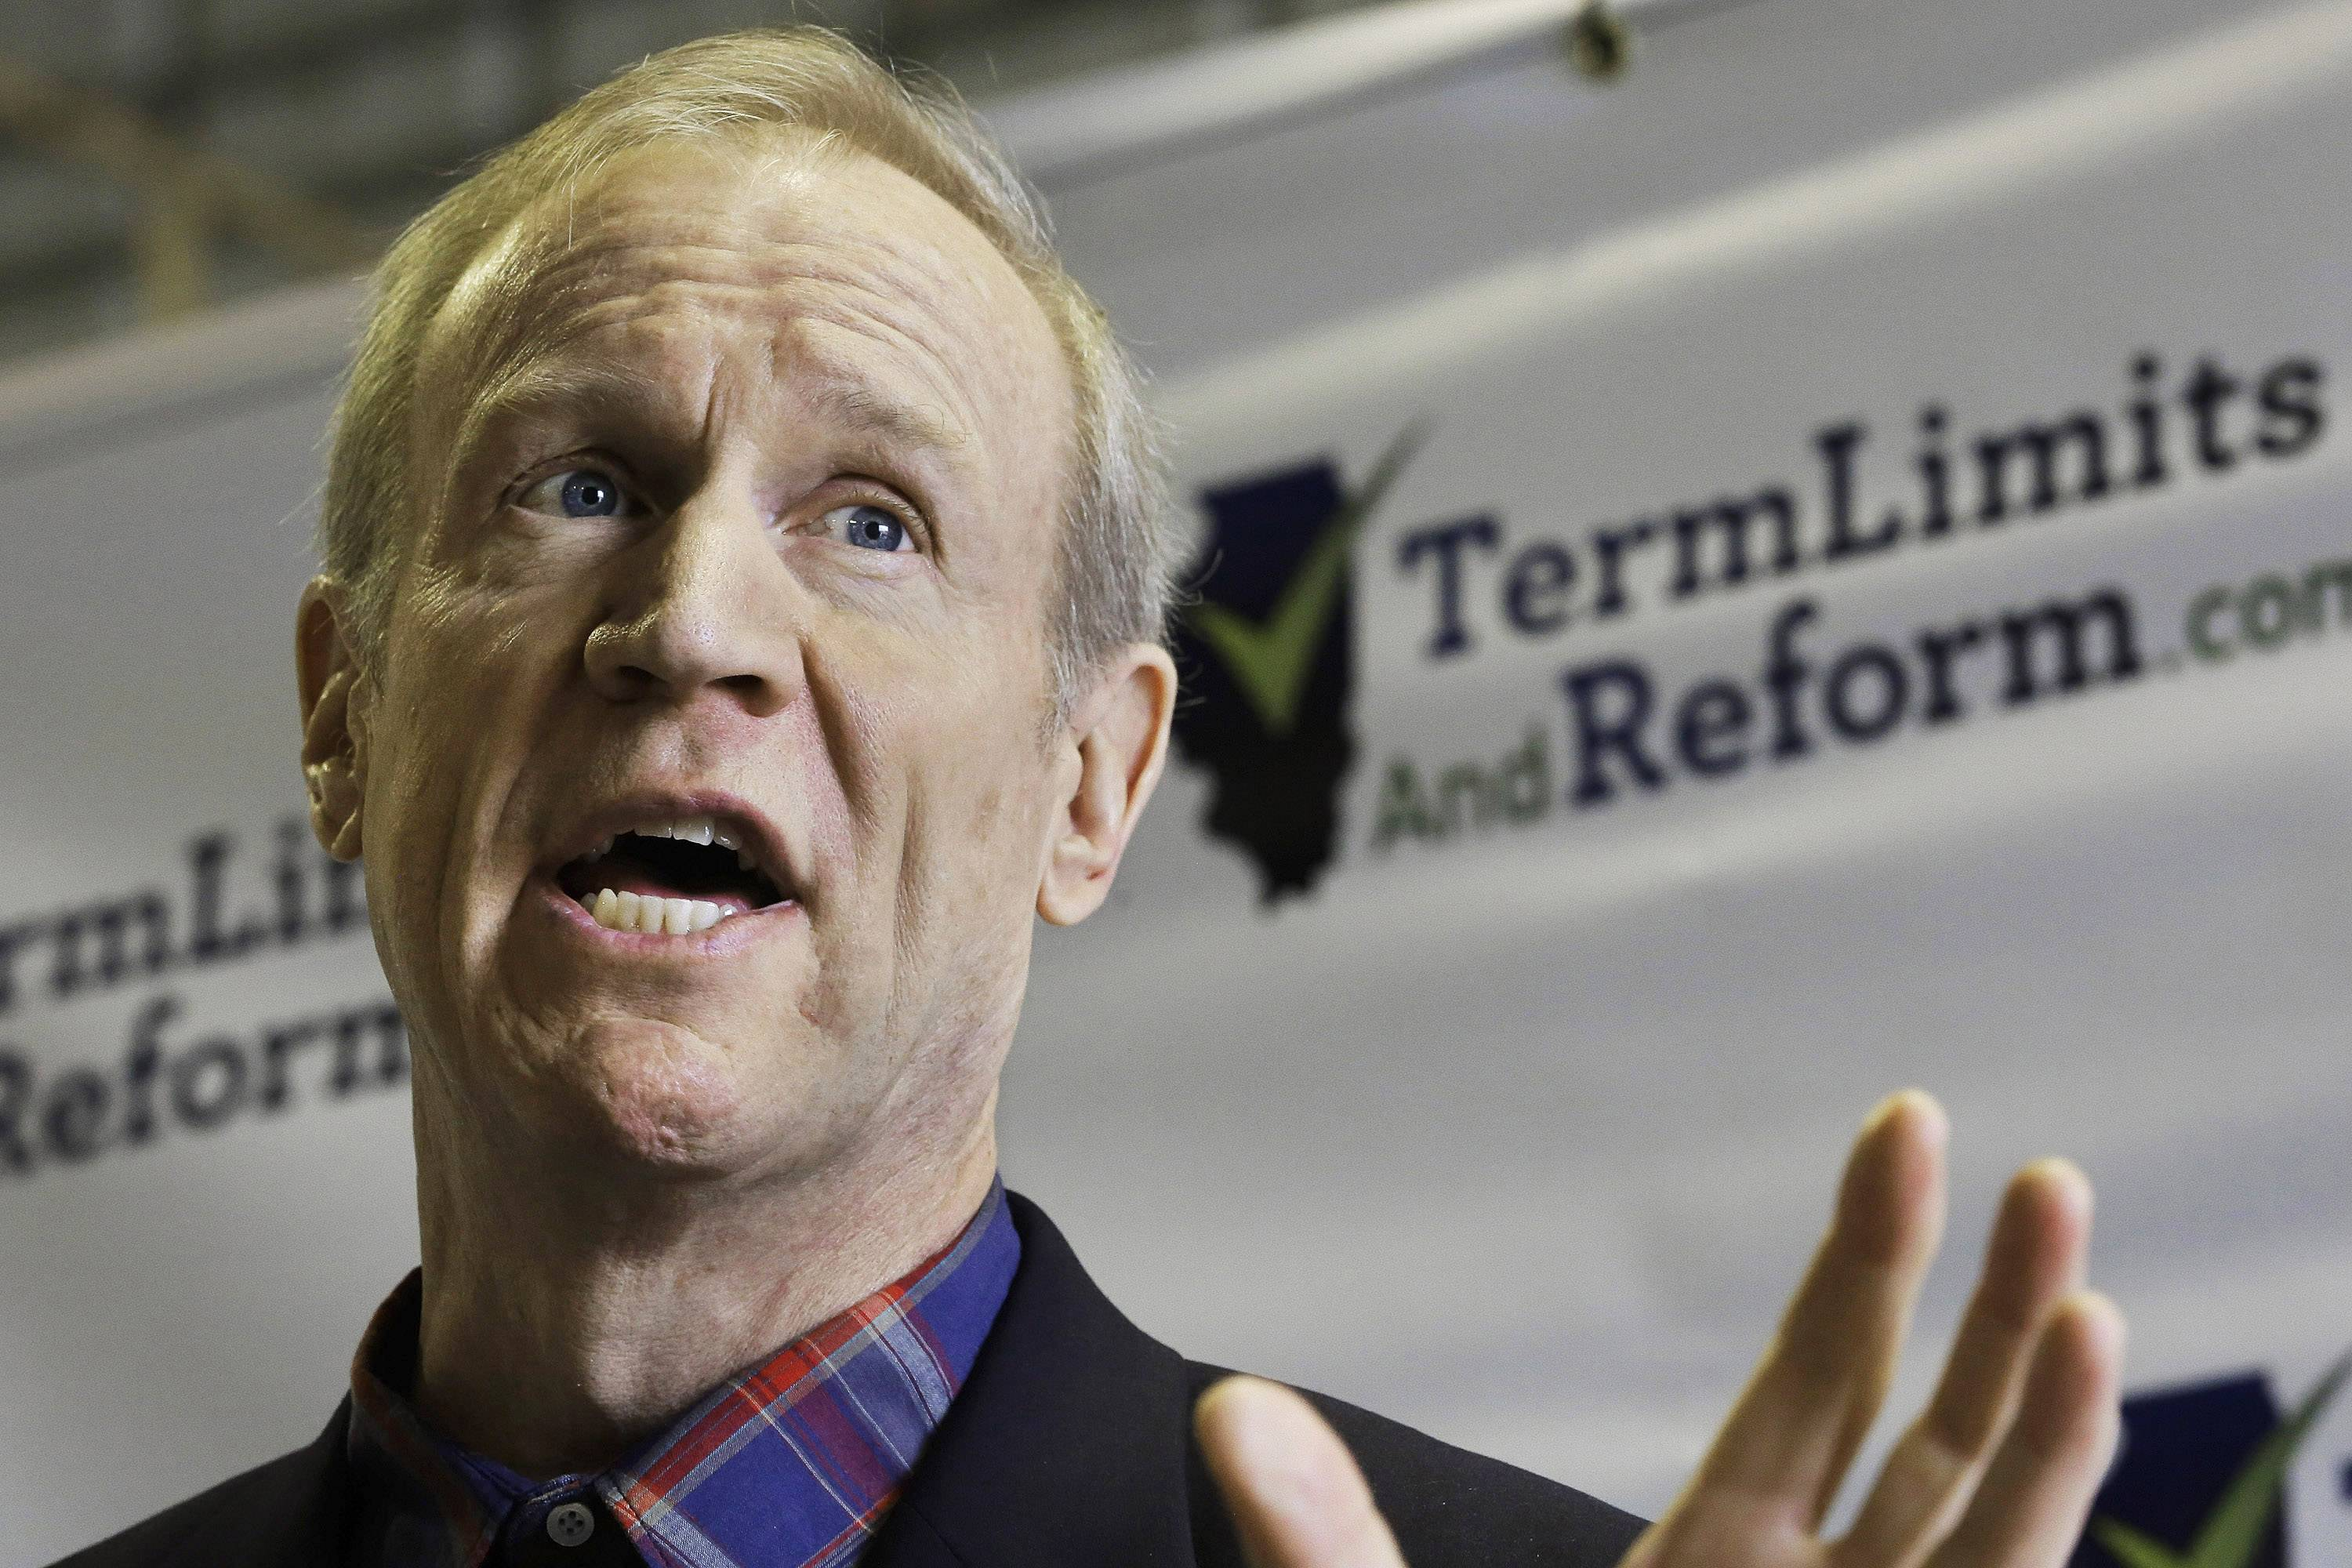 Republican gubernatorial candidate Bruce Rauner speaks to reporters about term limits for lawmakers Wednesday in Springfield.